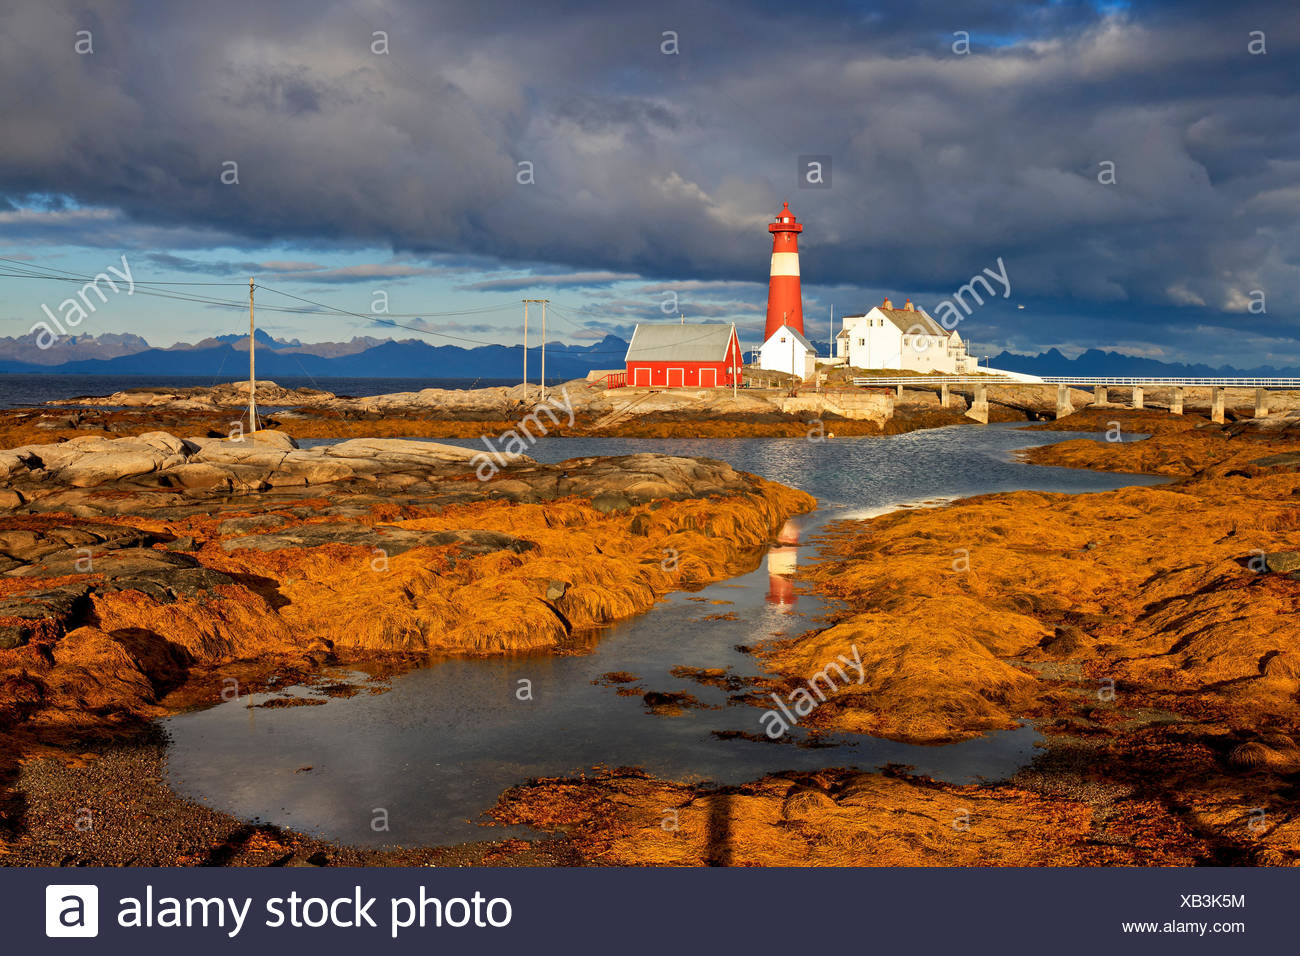 Europe, Norway, Nordnorwegen, province northern country, local authority district Hamaroy, island Tranoy, lighthouse of Tranoy - Stock Image